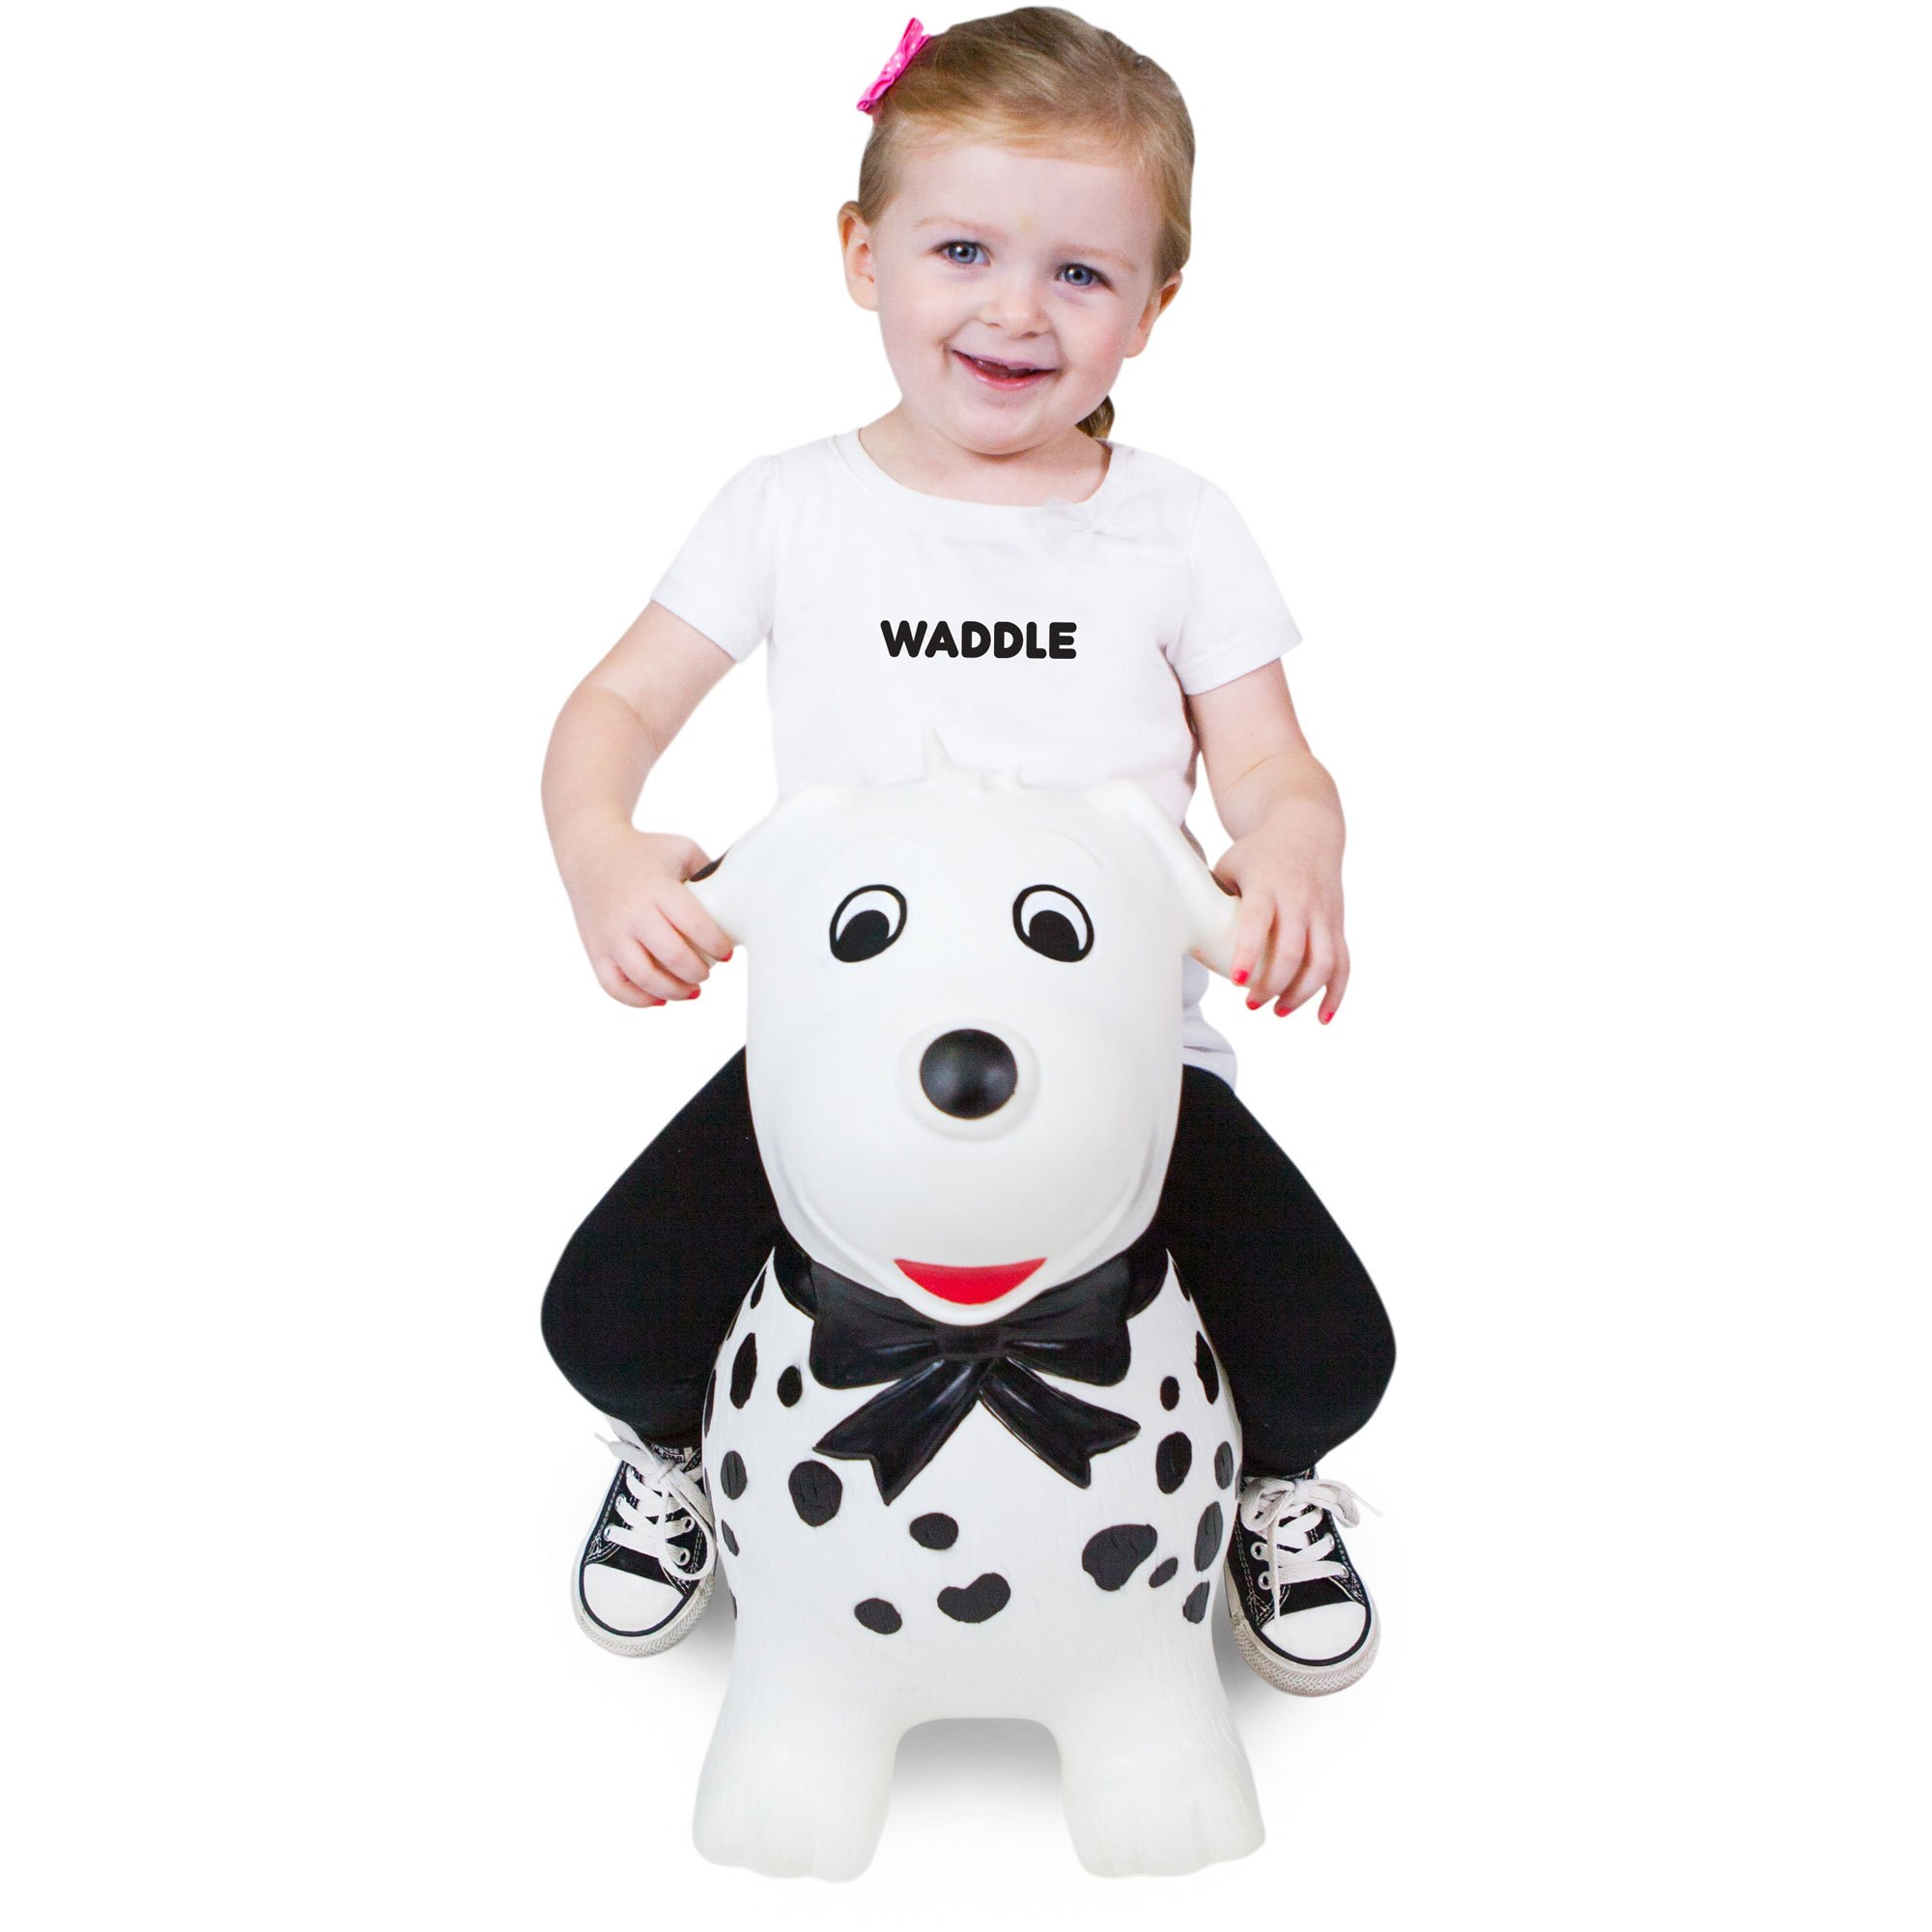 WADDLE Favorite Dog Toy Hopper Ride On Inflatable Animal Bouncer Kids Bouncy Horse for Boys Or Girls Interactive Stimulation Sensory Jumping Toys Spots Dalmatian For Toddlers and Children Gift Idea